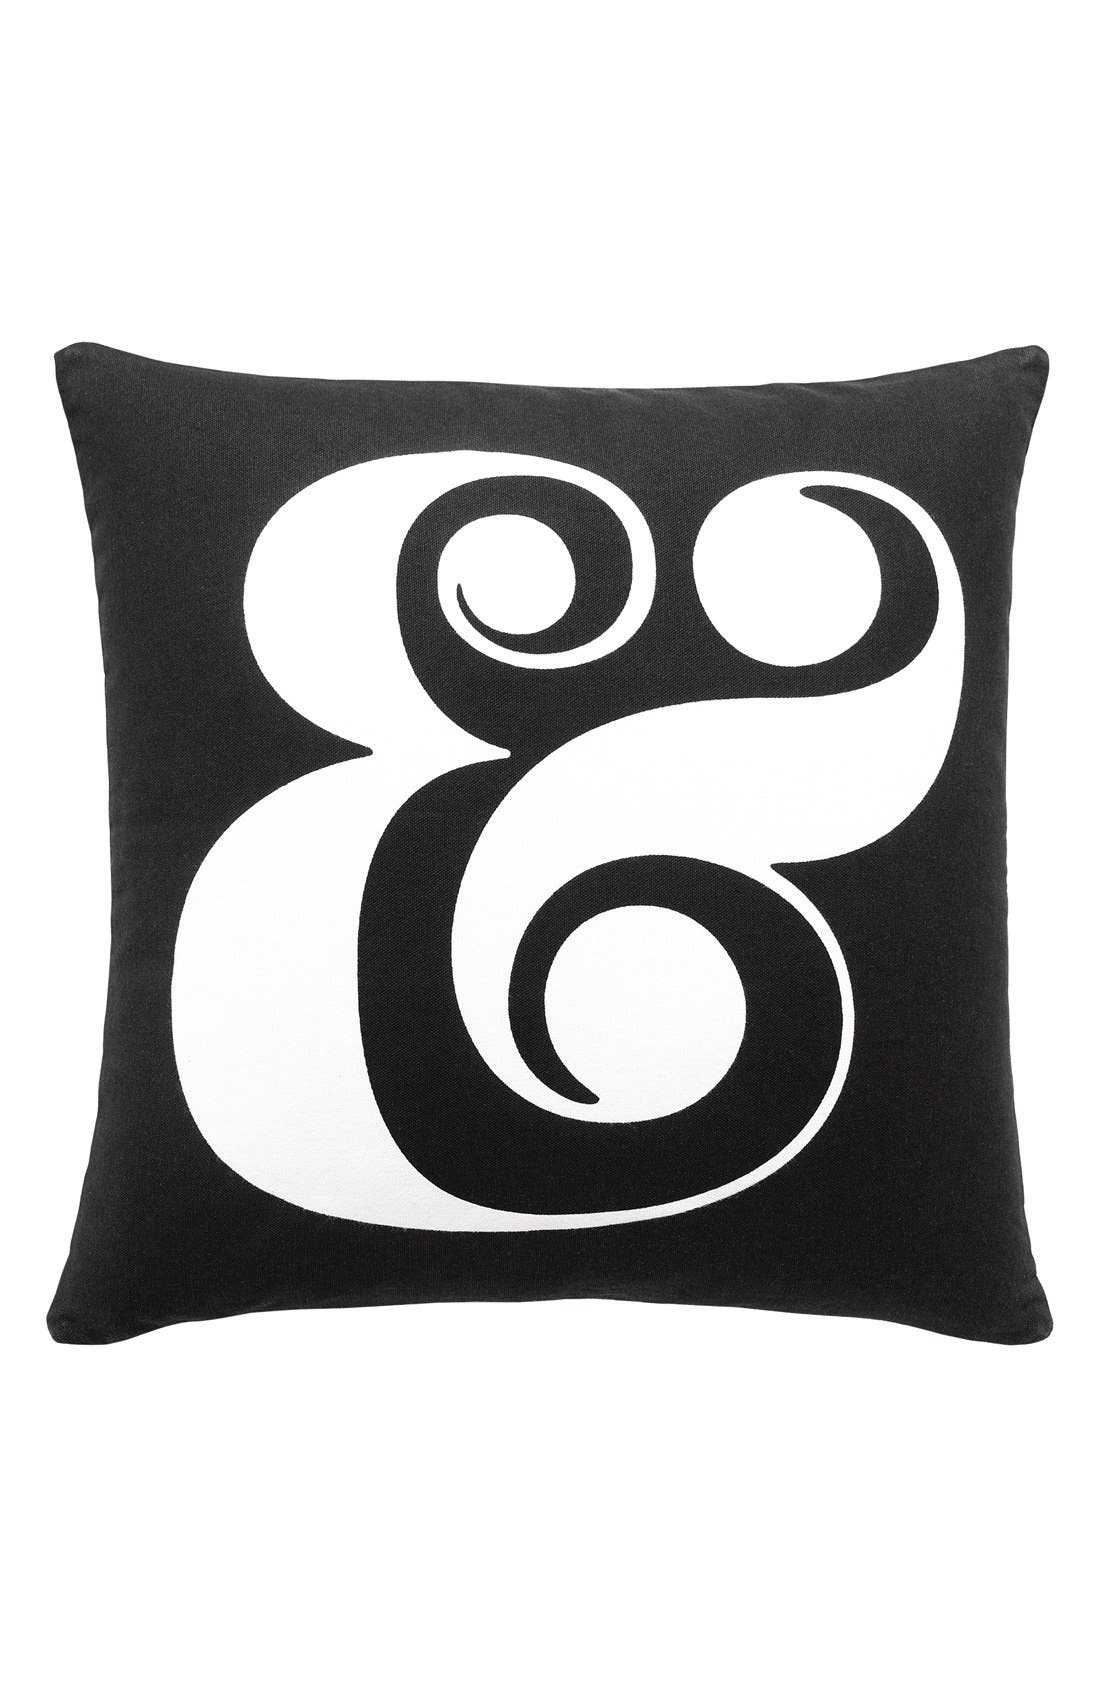 'ampersand' pillow,                             Main thumbnail 1, color,                             001